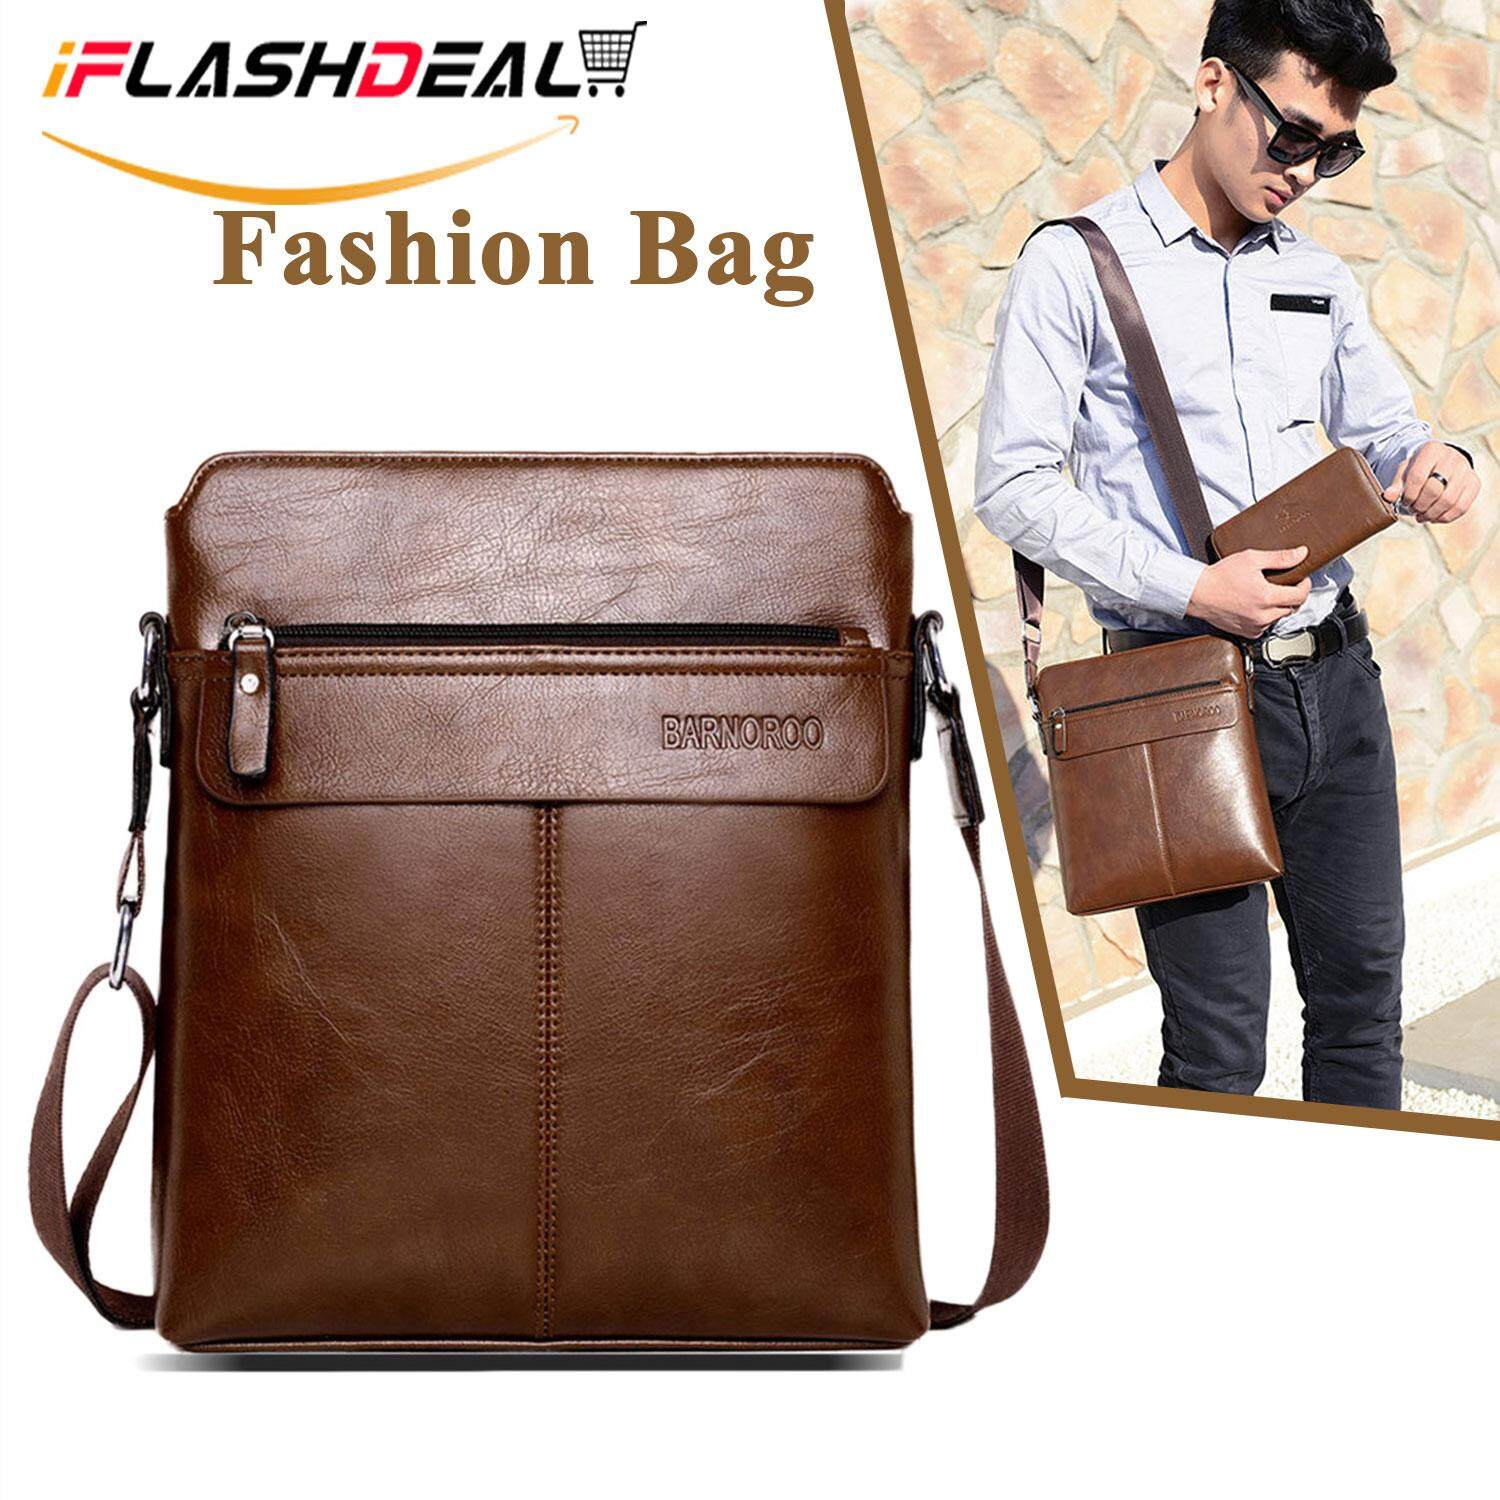 35c1538fa6a2 iFlashDeal Sling Bag Men Messenger Bags PU Leather Crossbody Shoulder Pouch  Bags Business Bags Men Fashion